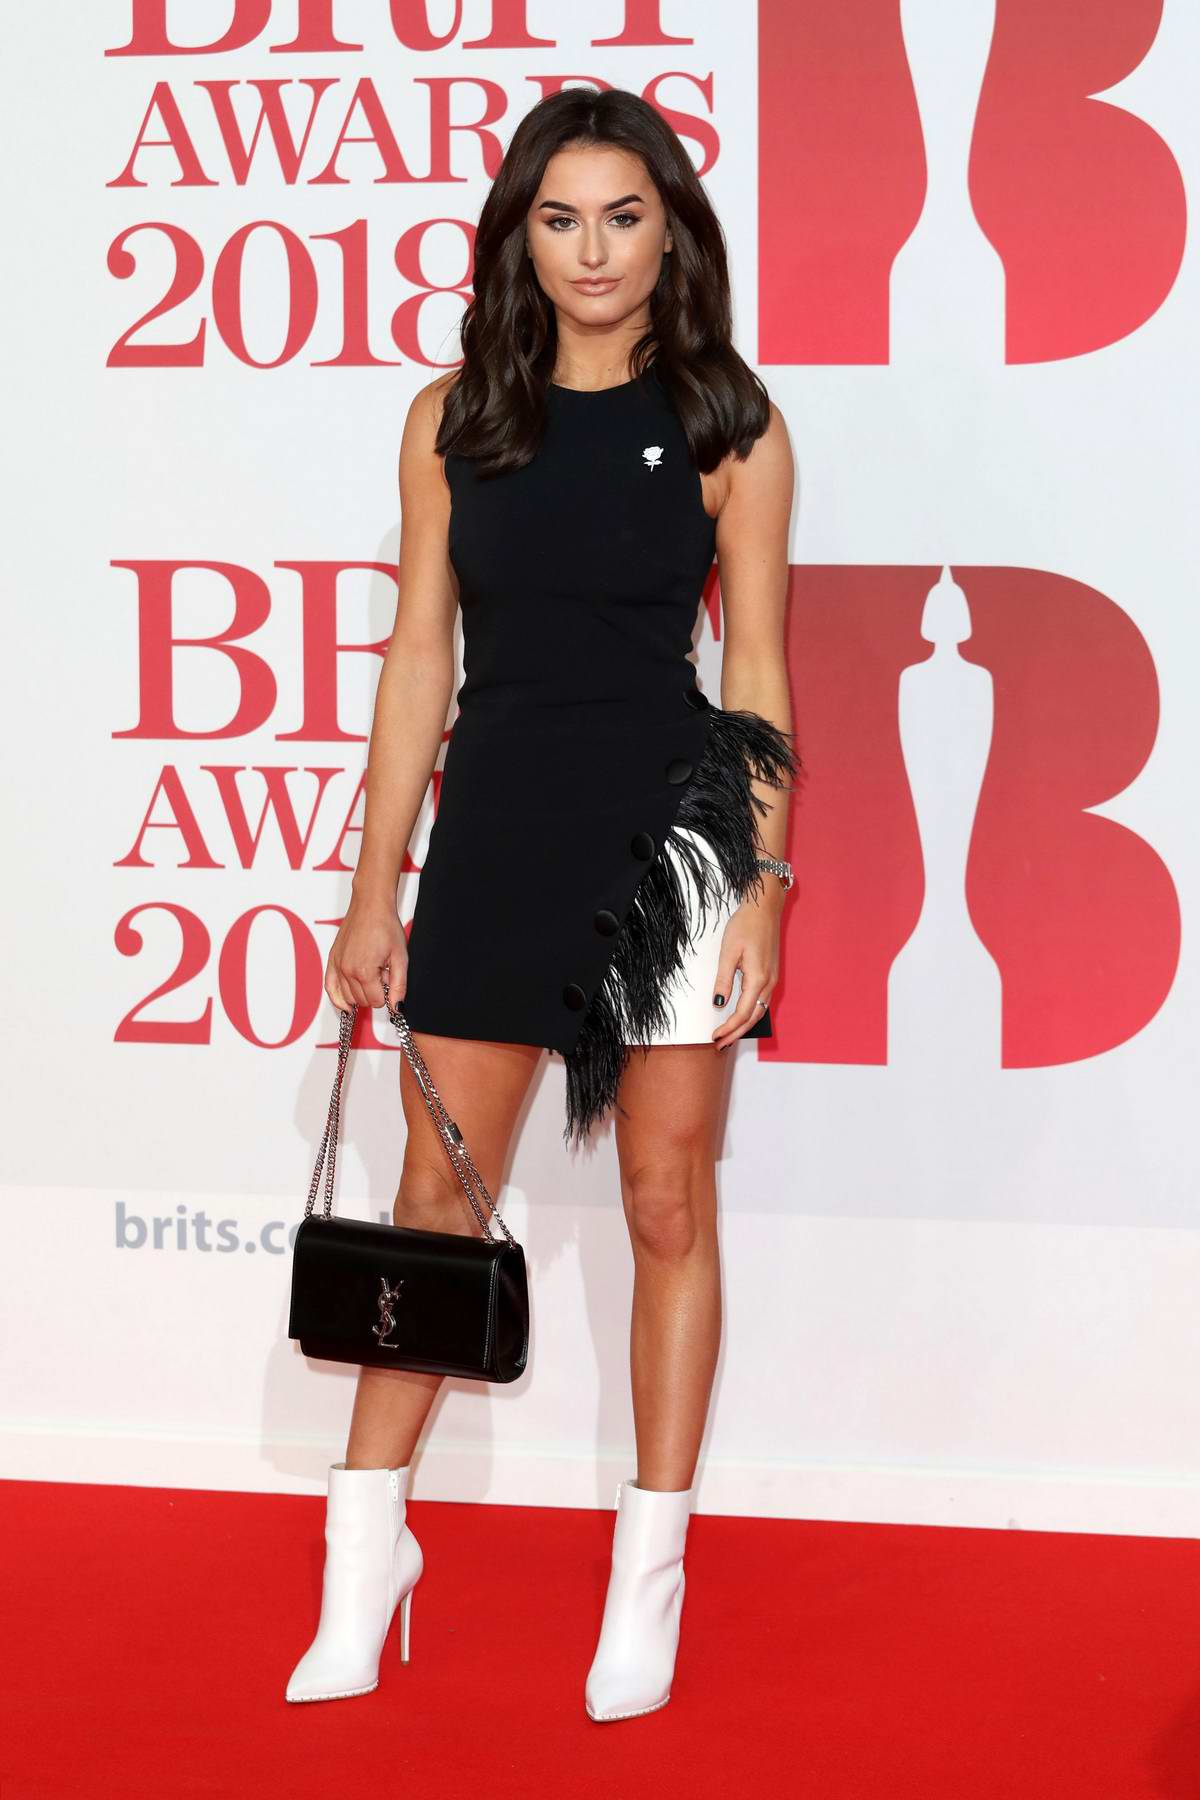 Amber Davies attends the 38th Brit Awards, held at the O2 Arena in London